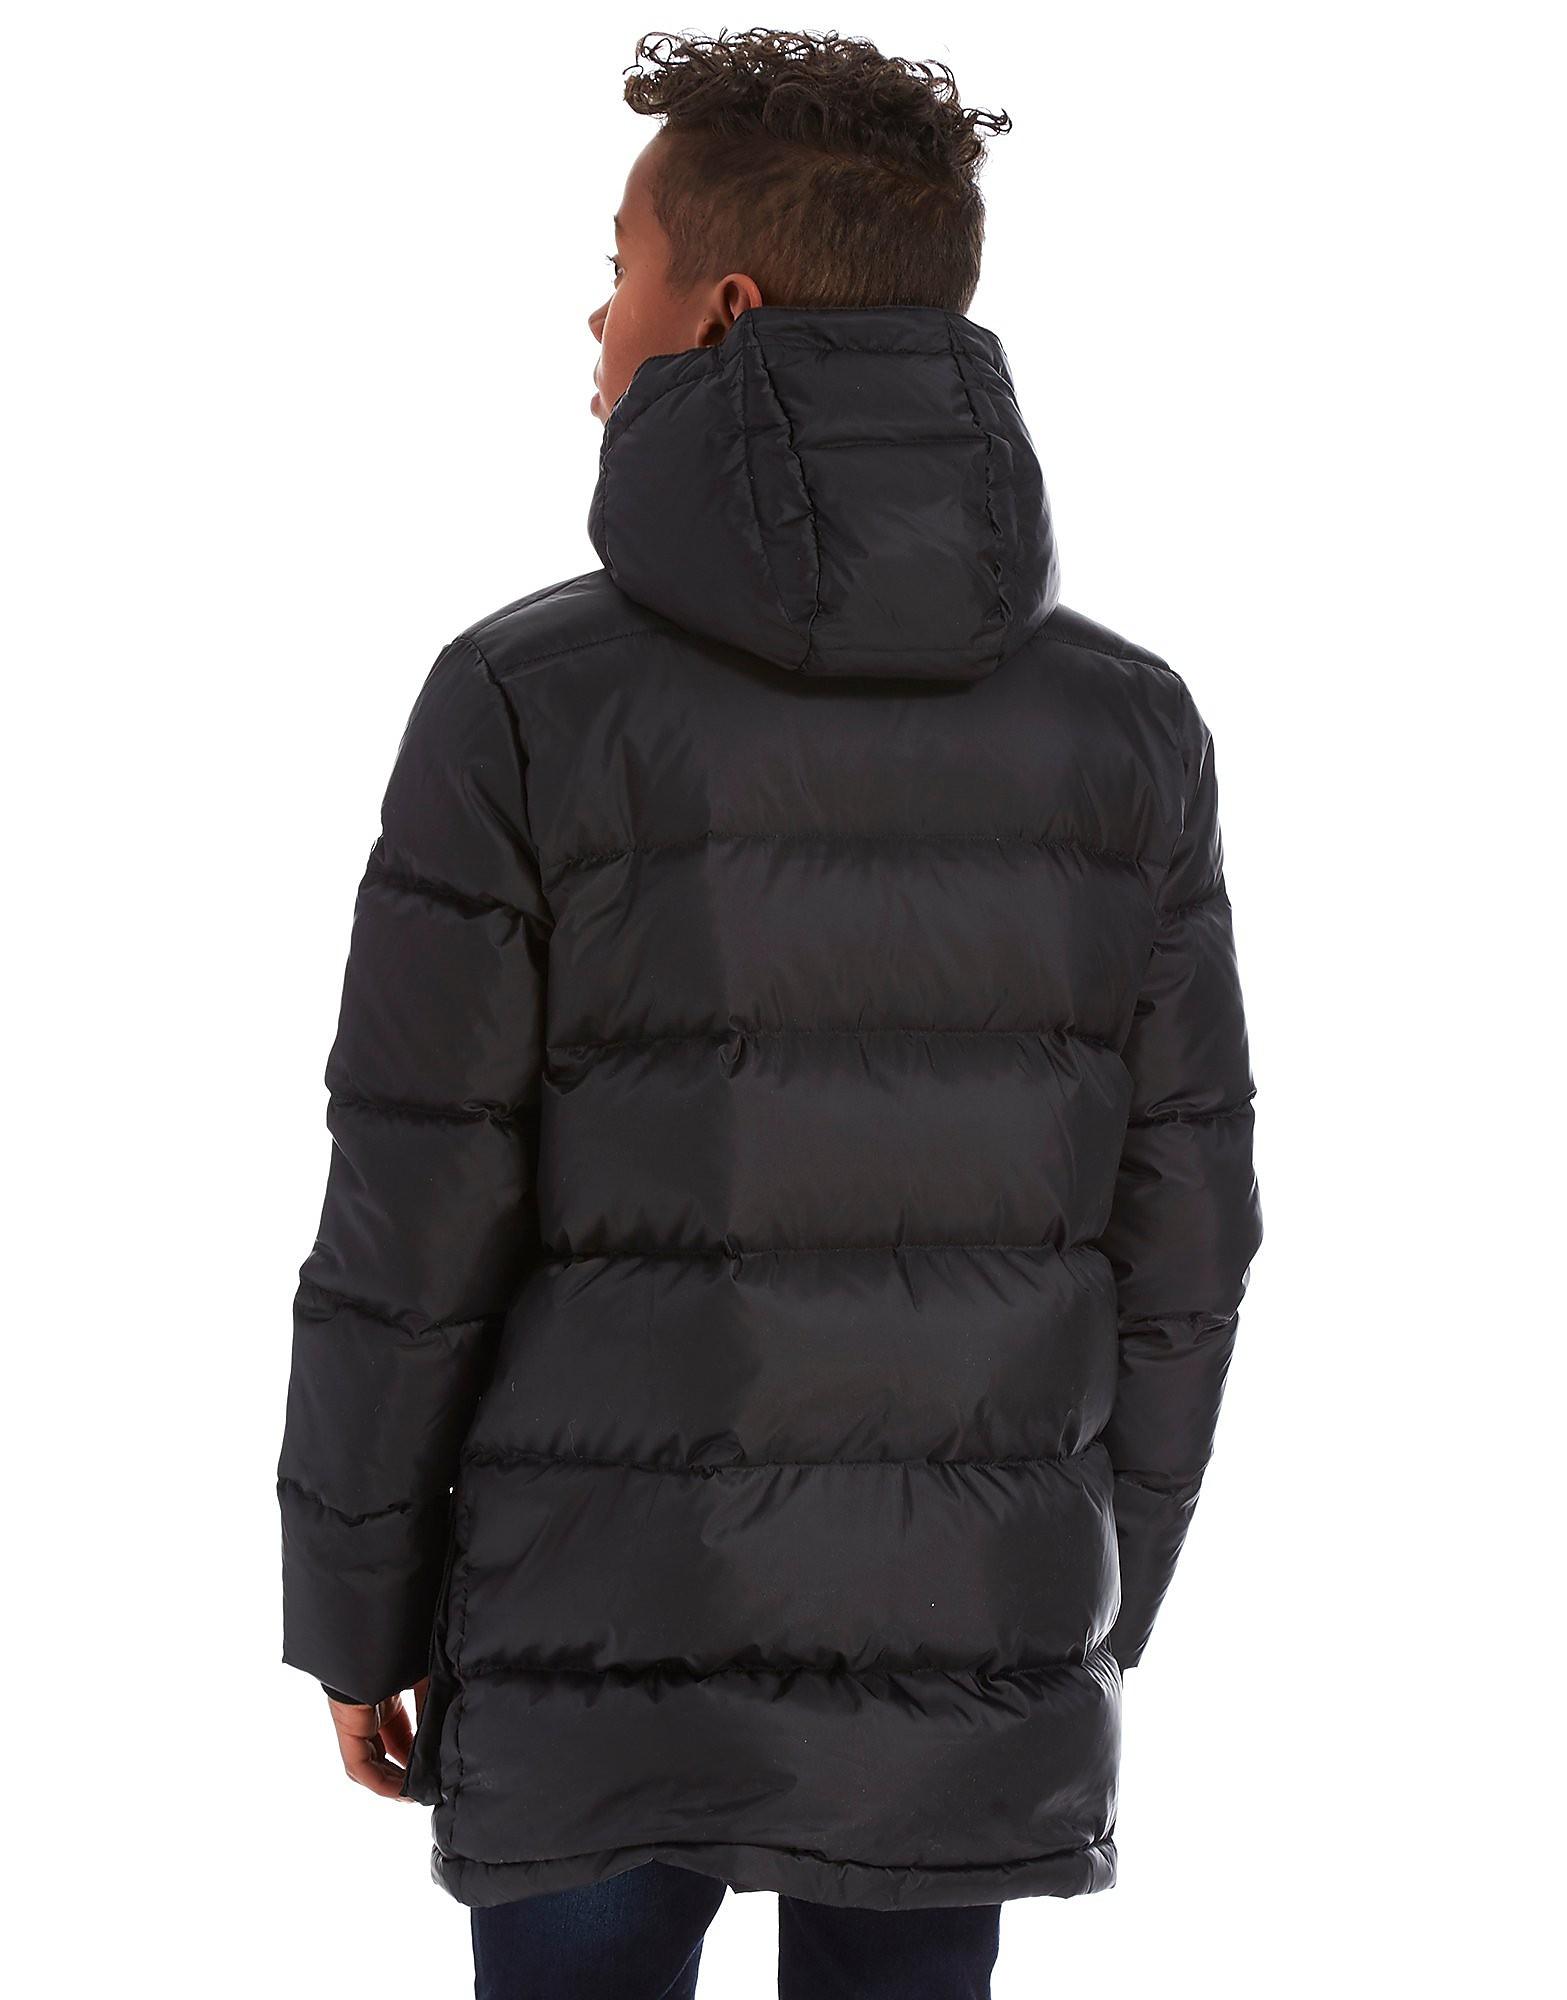 Emporio Armani EA7 Mountain Parka Jacket Junior